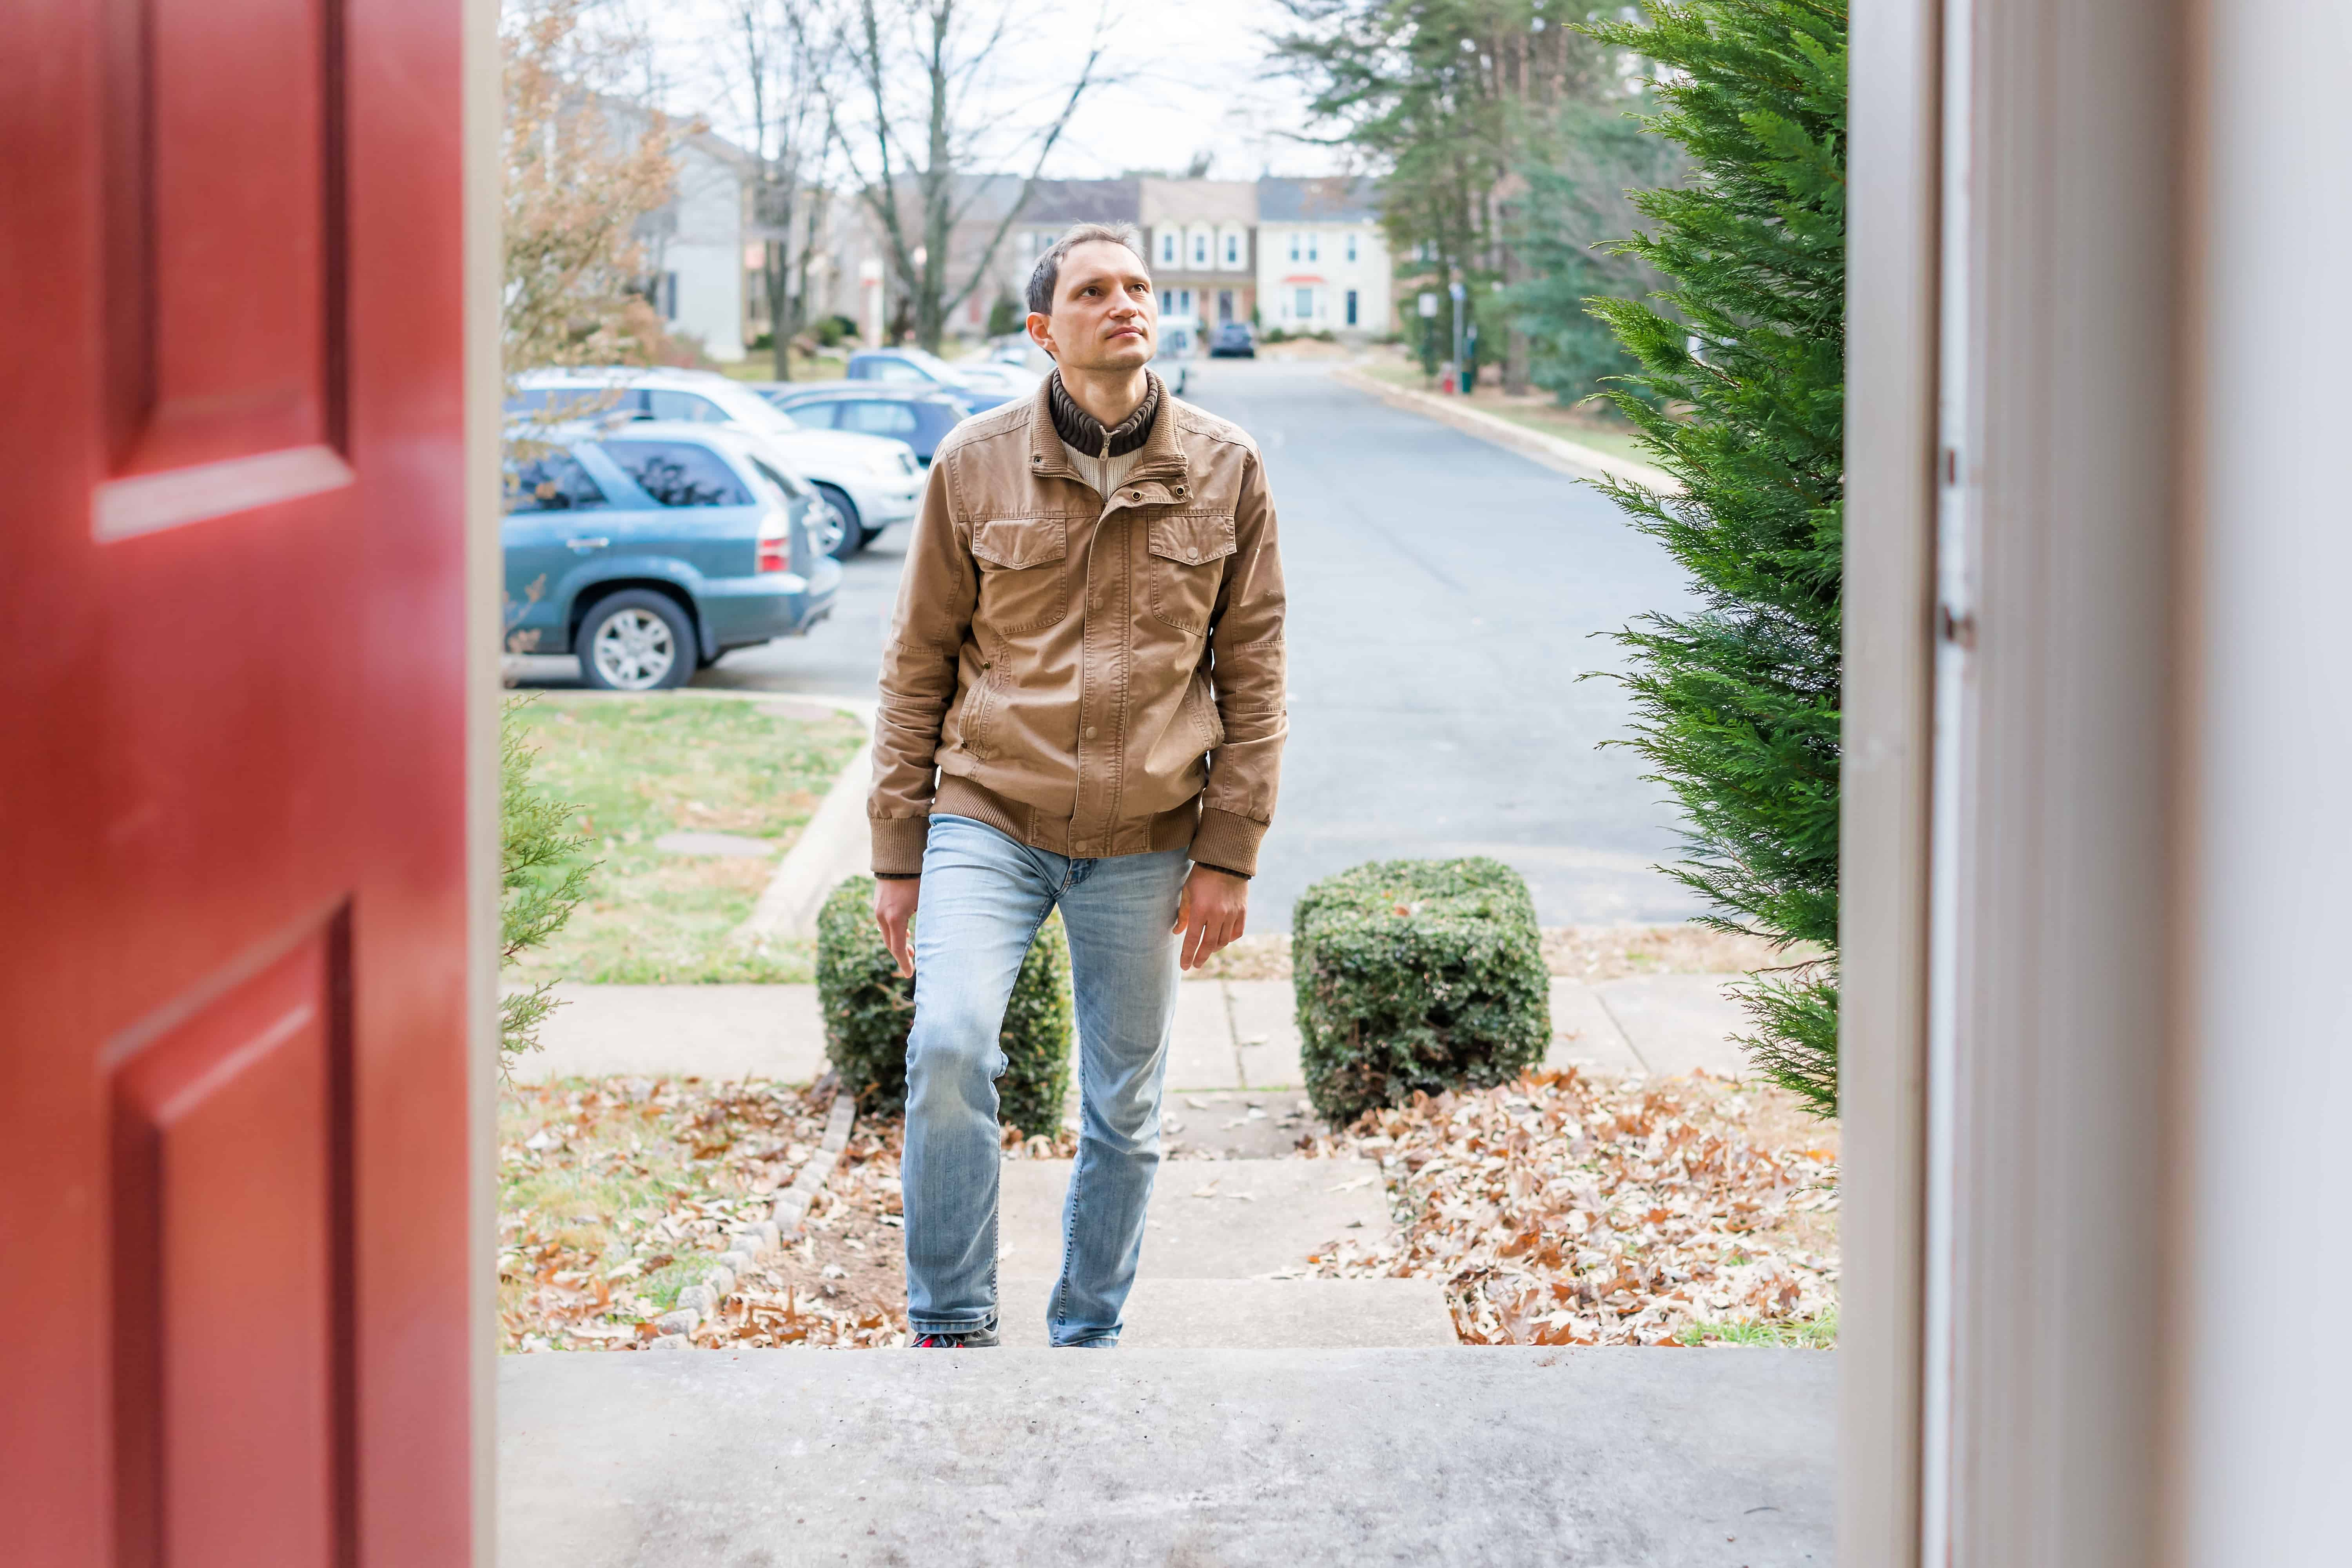 Young man standing on the front steps in front of house looking to buy real estate residential neighborhood